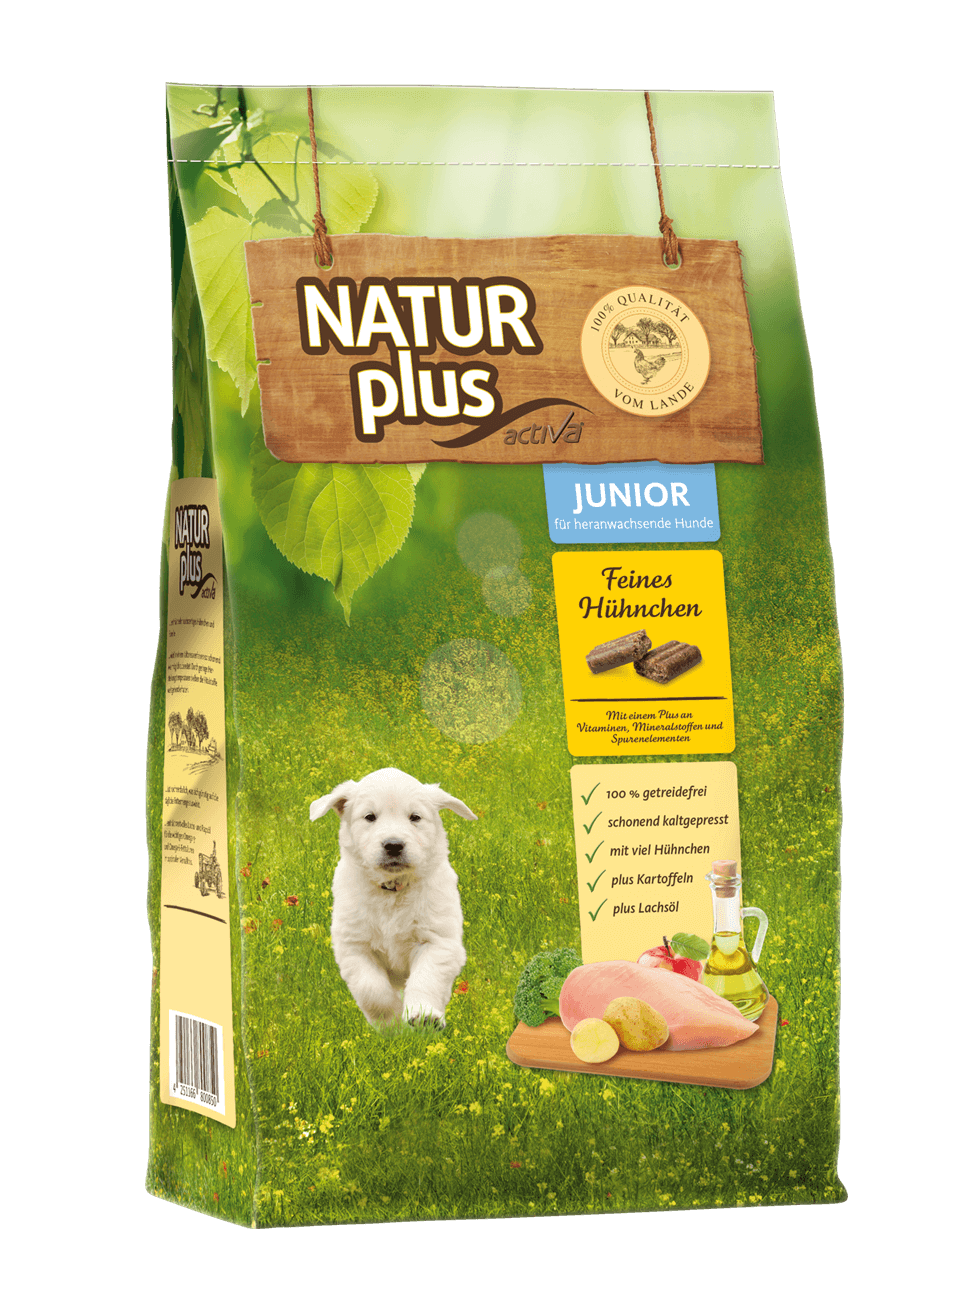 Natur plus Hund Junior